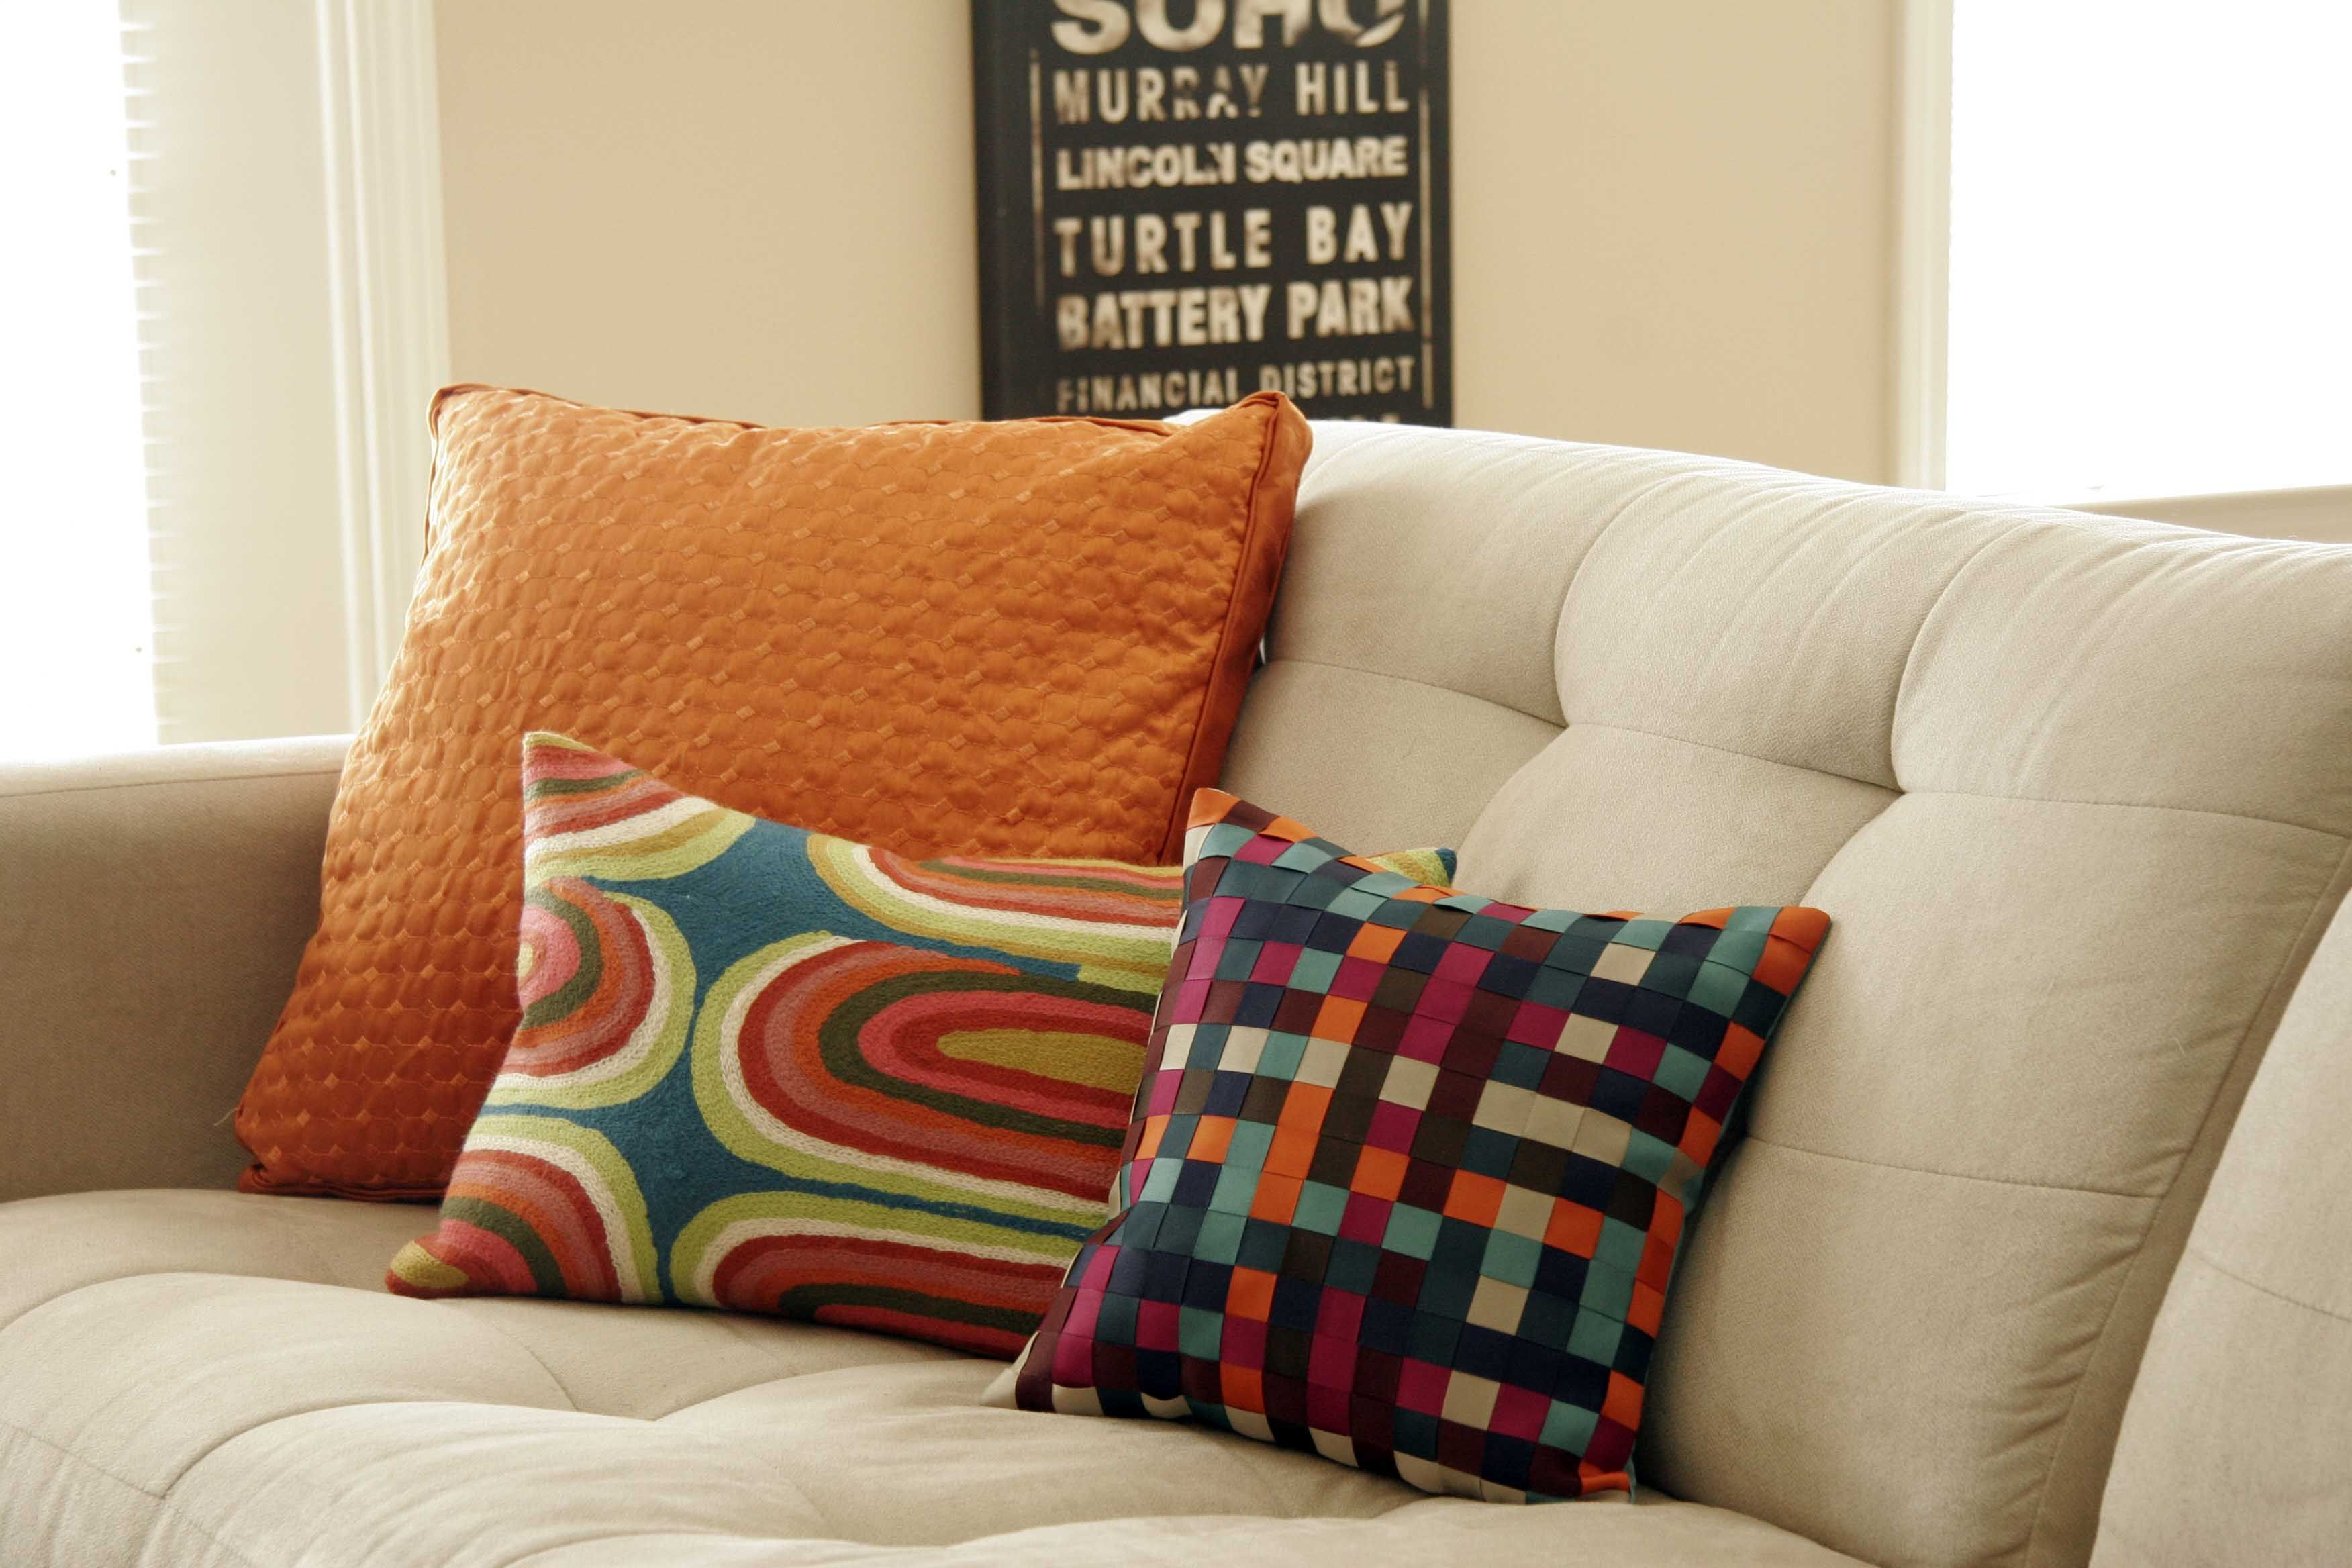 Decorative Couch Pillows Large Couch Pillows Throw Pillows